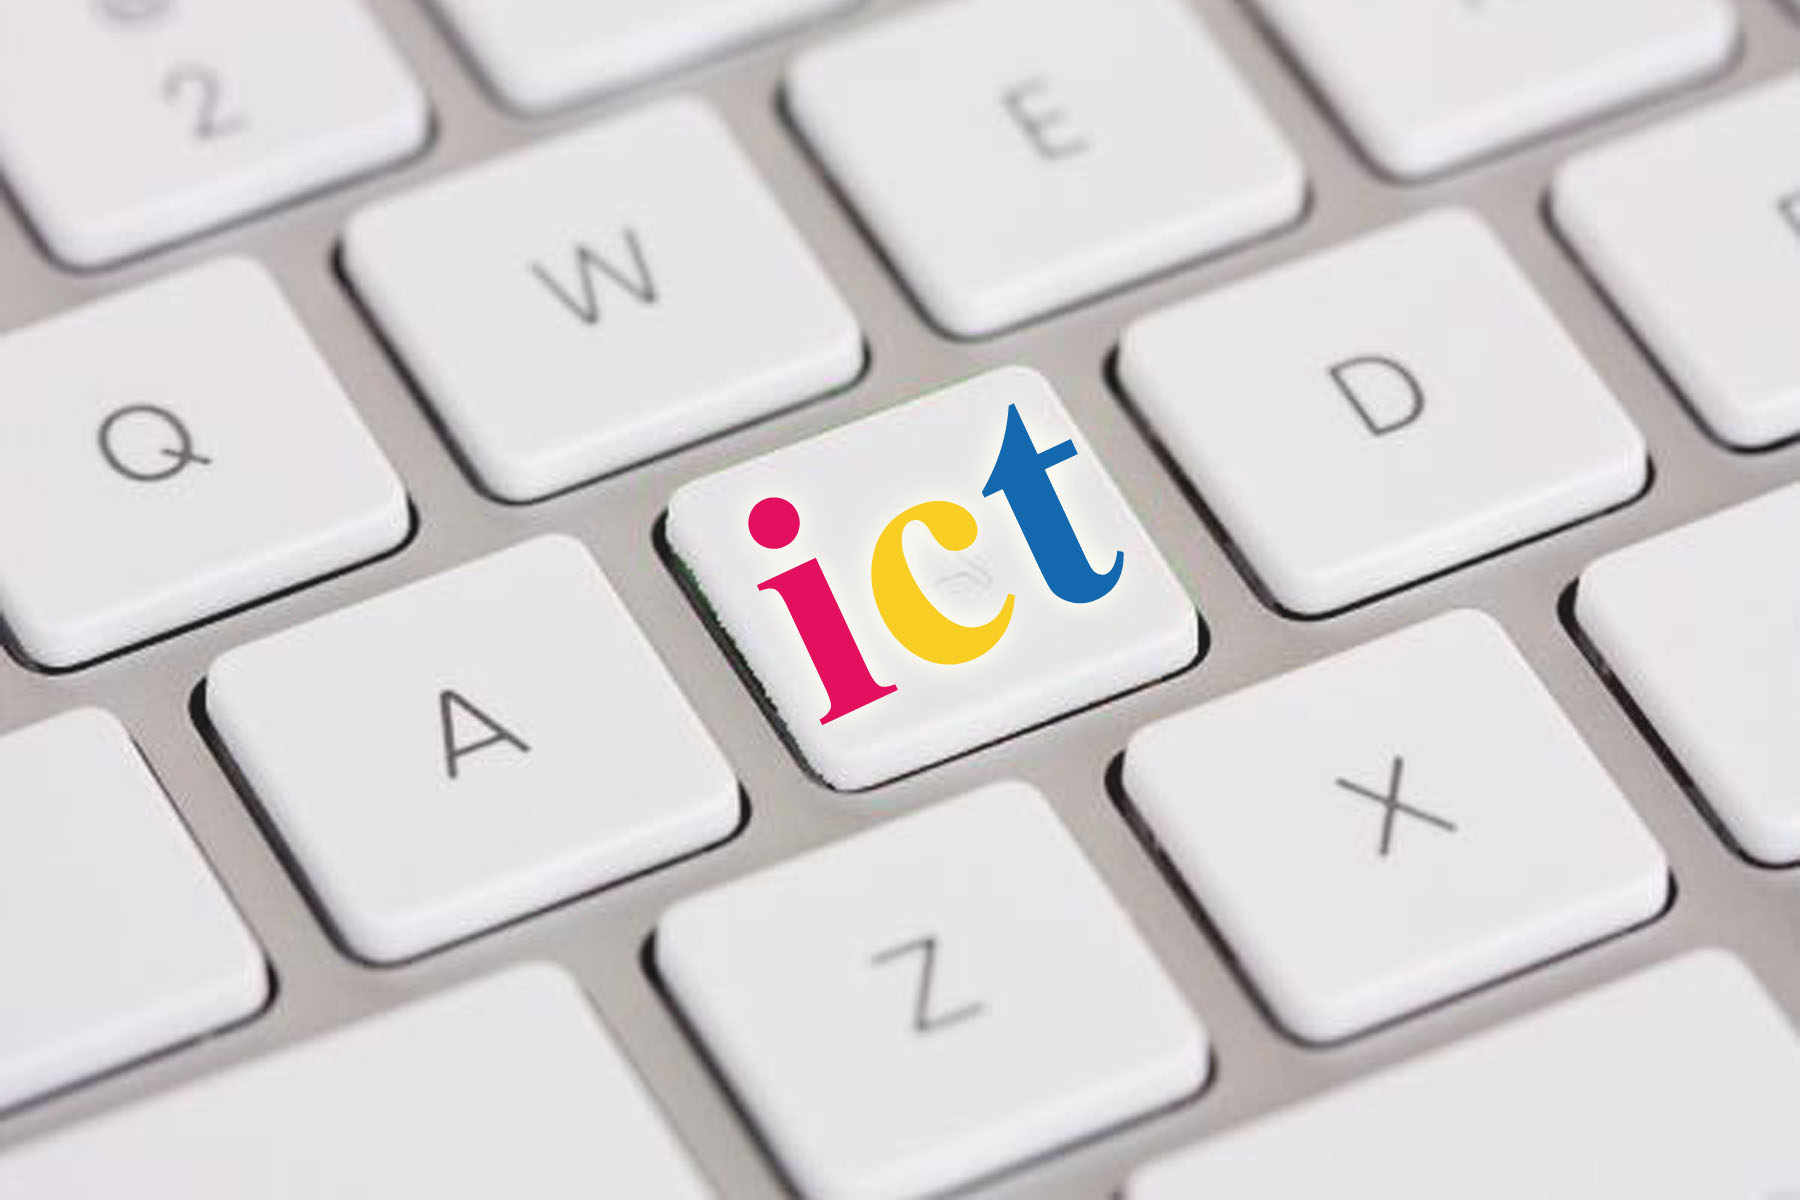 ict-for accessibility - 9th European Forum on Accessibility - Paris